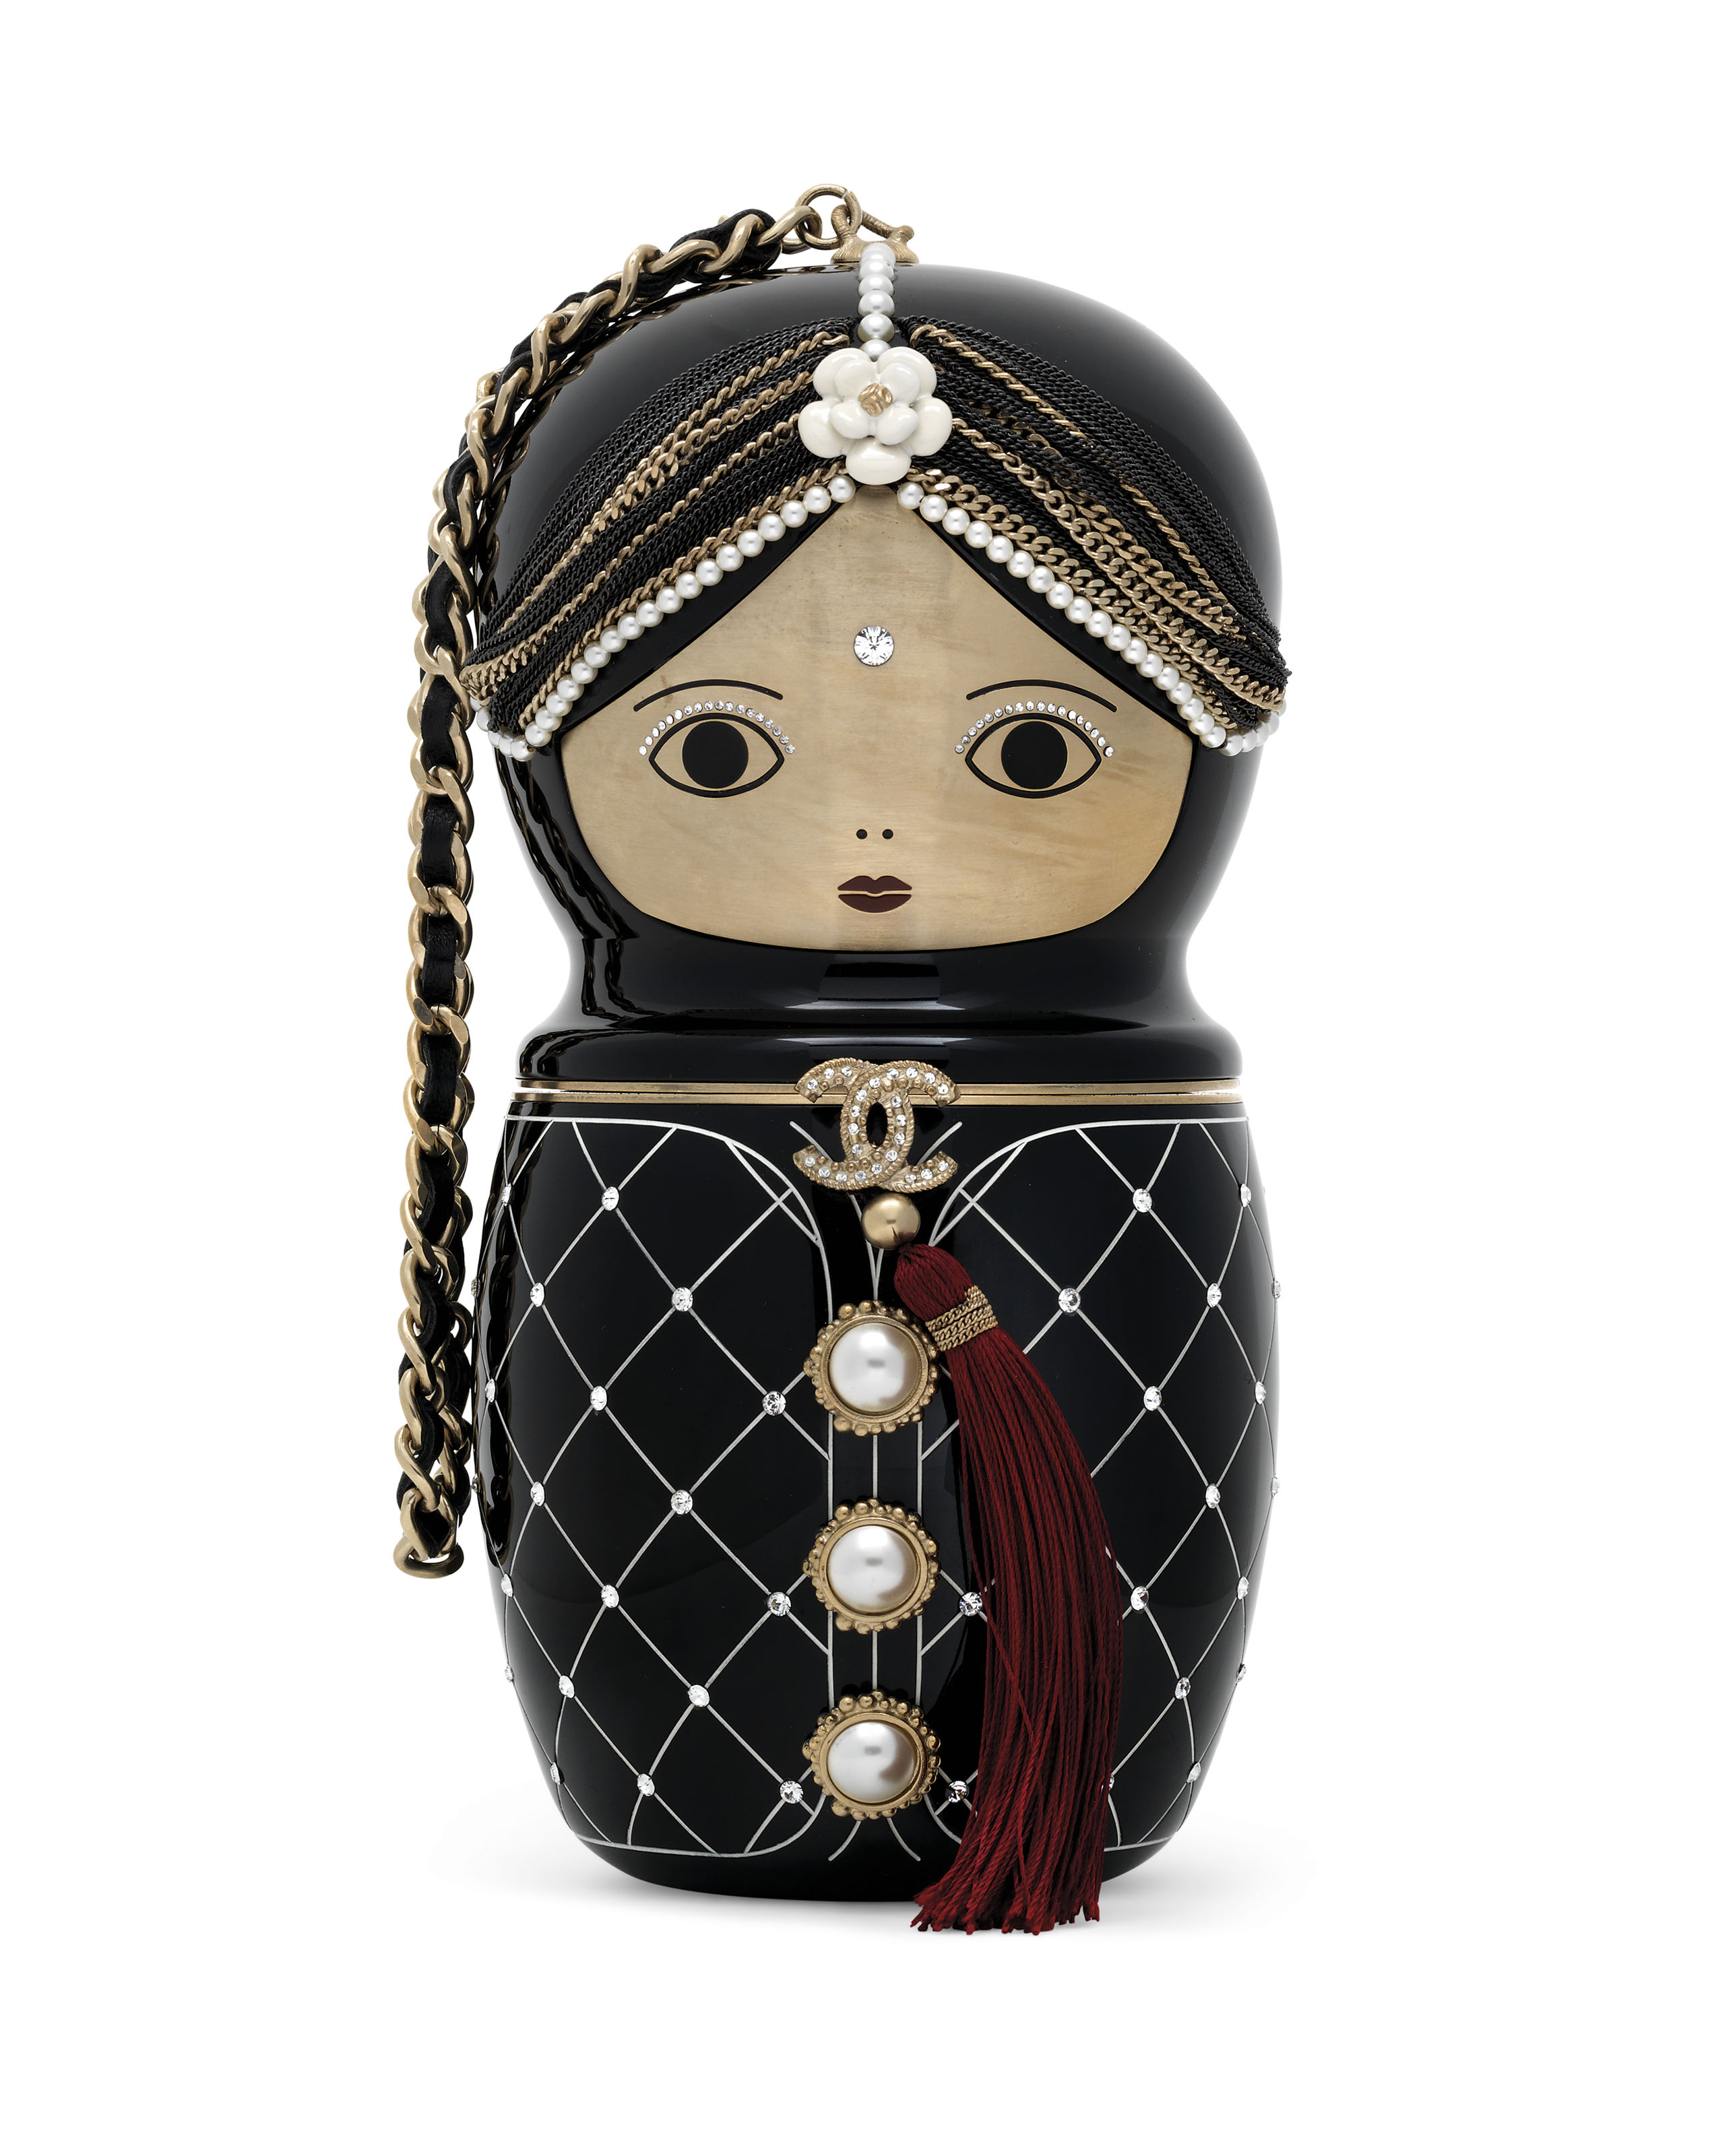 c27caec77a40 A MÉTIERS D'ART PARIS-BOMBAY RUNWAY BLACK LUCITE MATRYOSHKA EVENING BAG  WITH GOLD HARDWARE. CHANEL ...